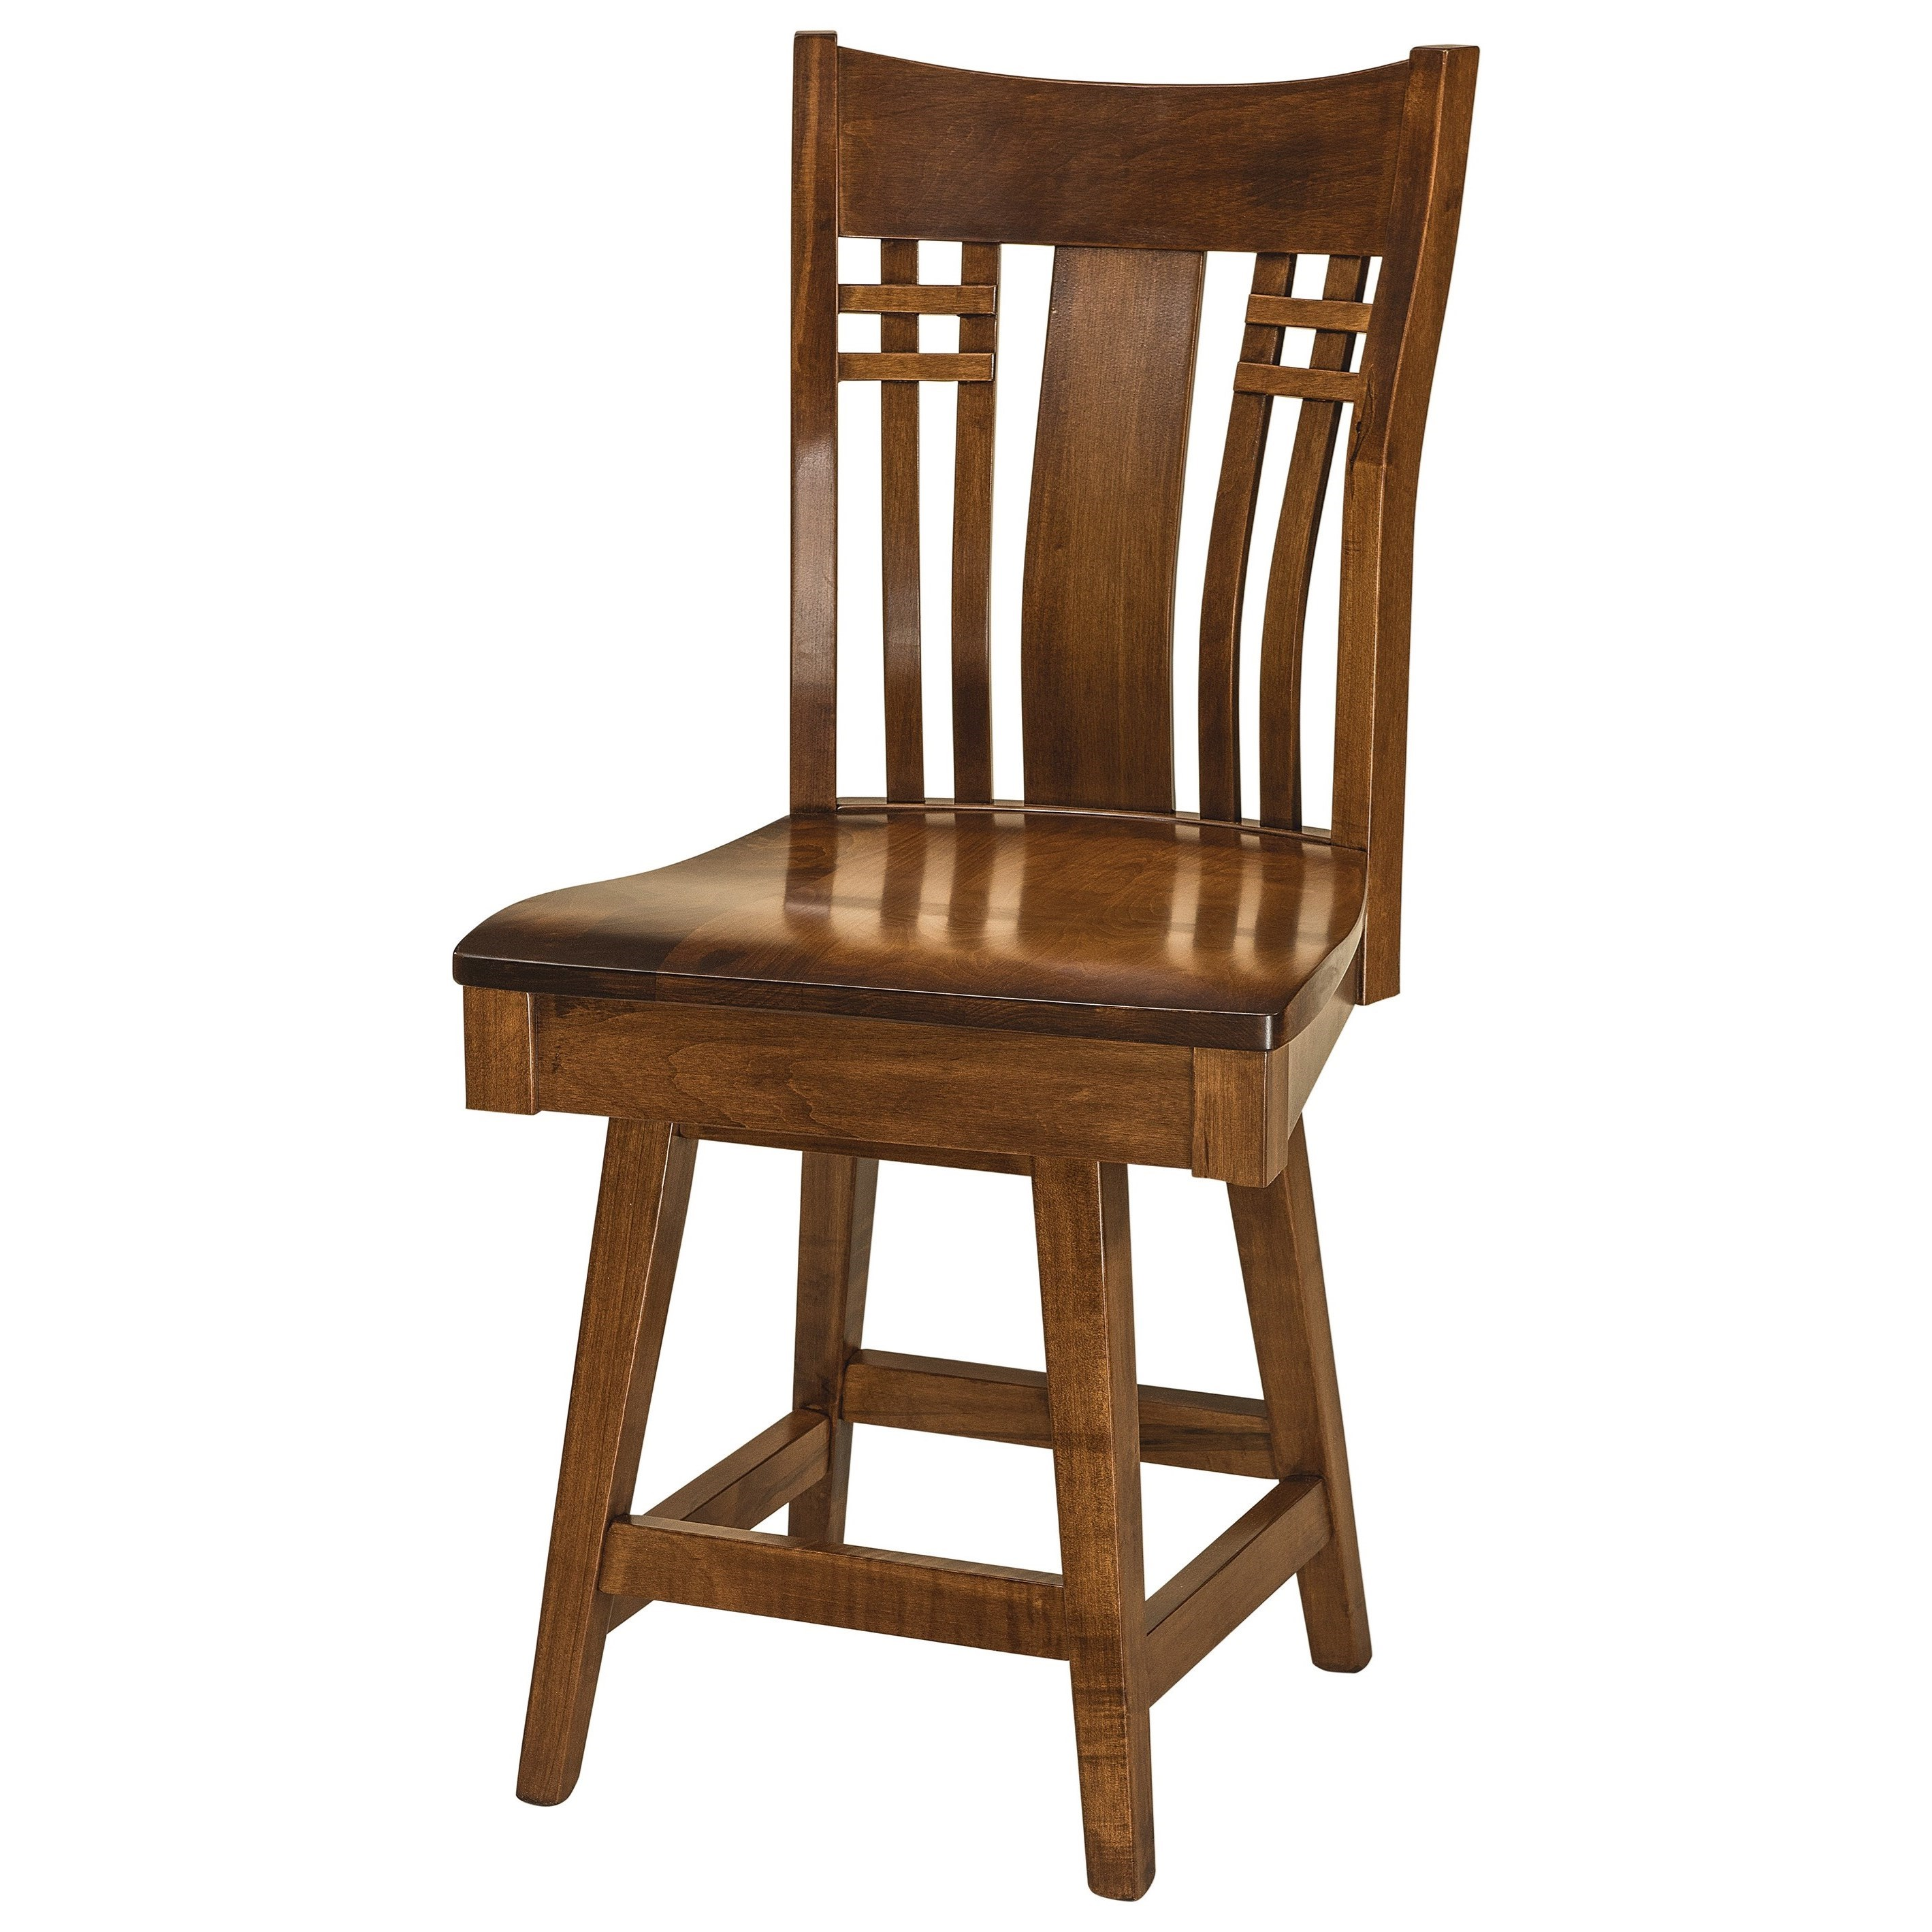 Bennet Swivel Bar Stool - Fabric Seat by F&N Woodworking at Mueller Furniture